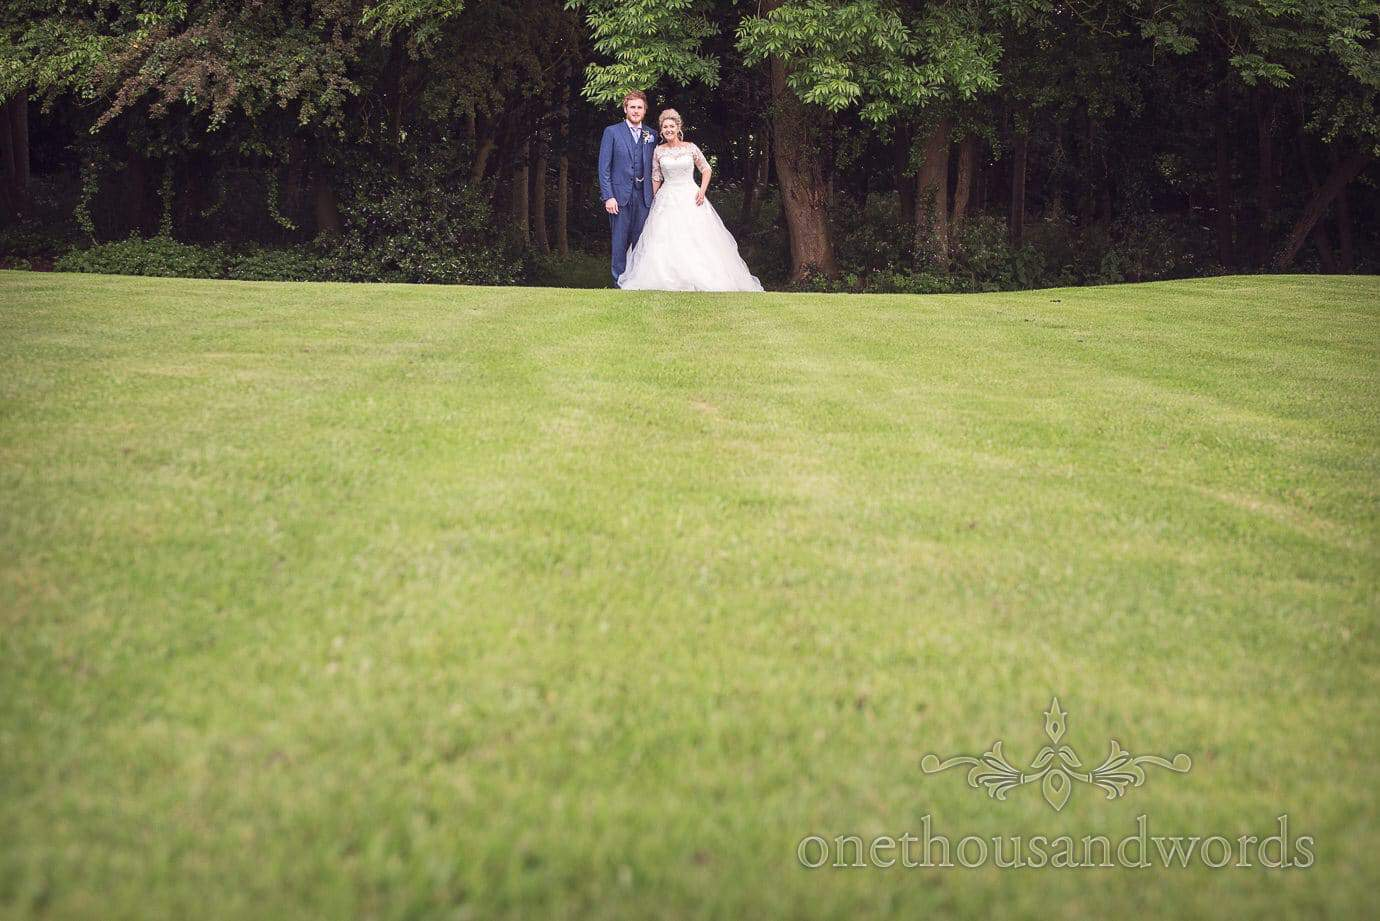 Bride and groom photograph shot across lawns at country wedding in Leicestershire